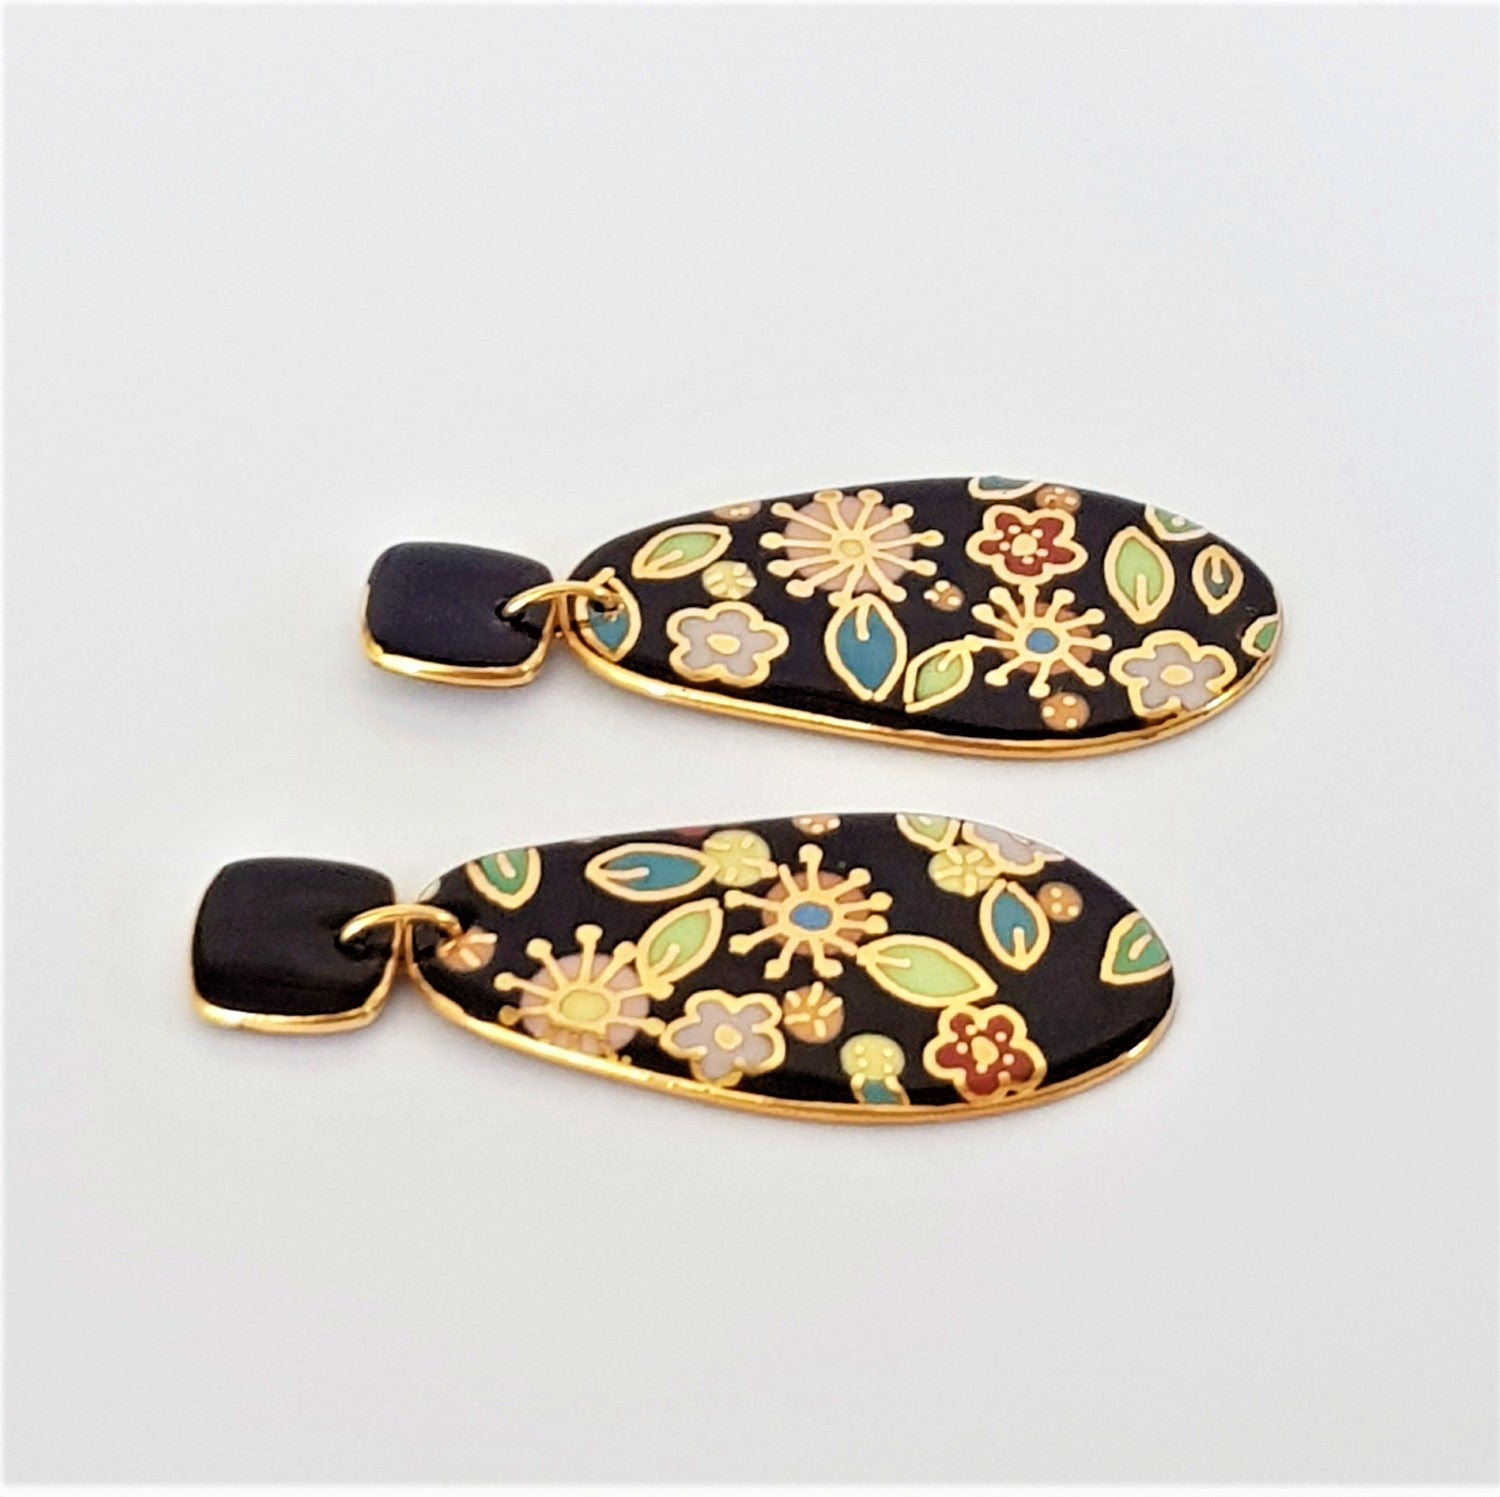 Porcelain double drop earrings - black with floral design and gold linework